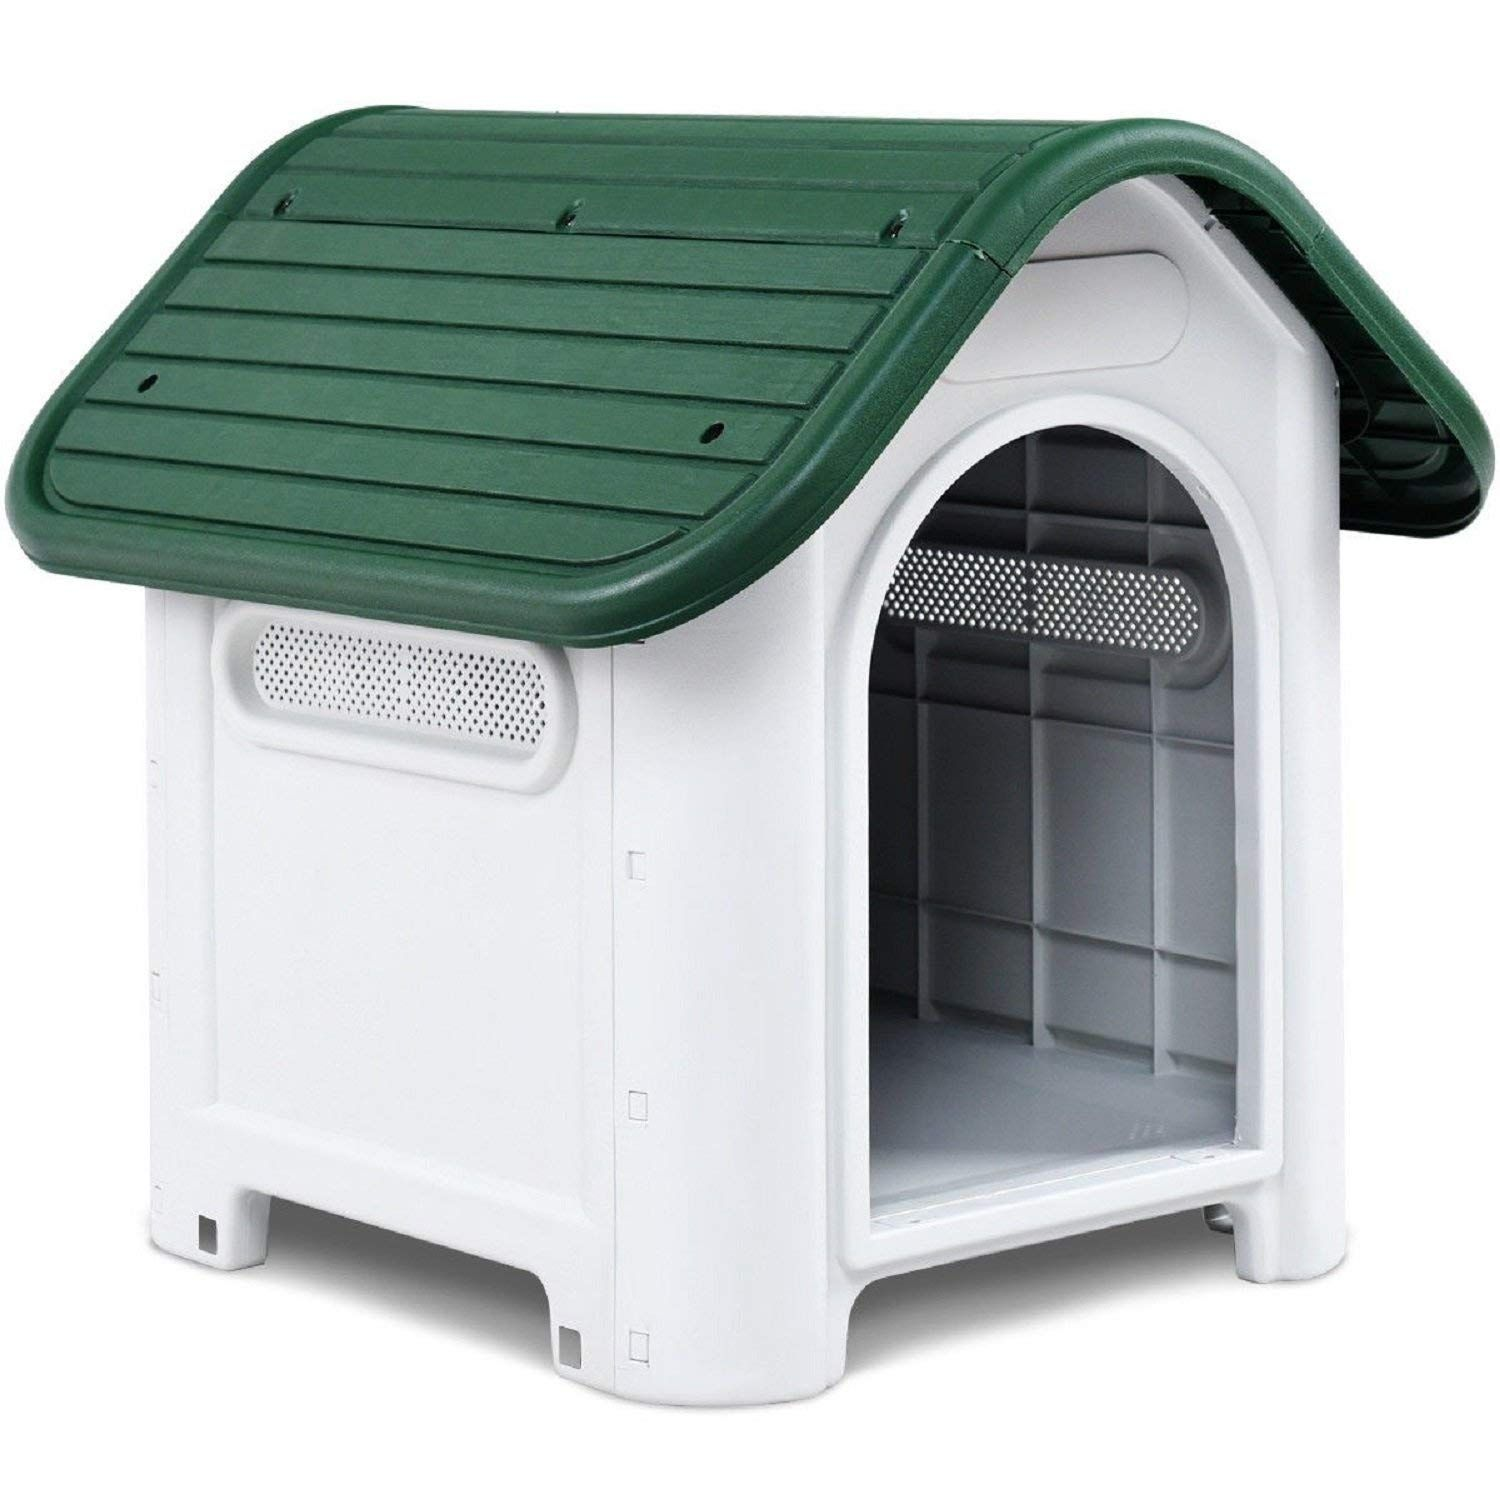 Costway Plastic Dog House Waterproof Puppy Pet Shelter Green